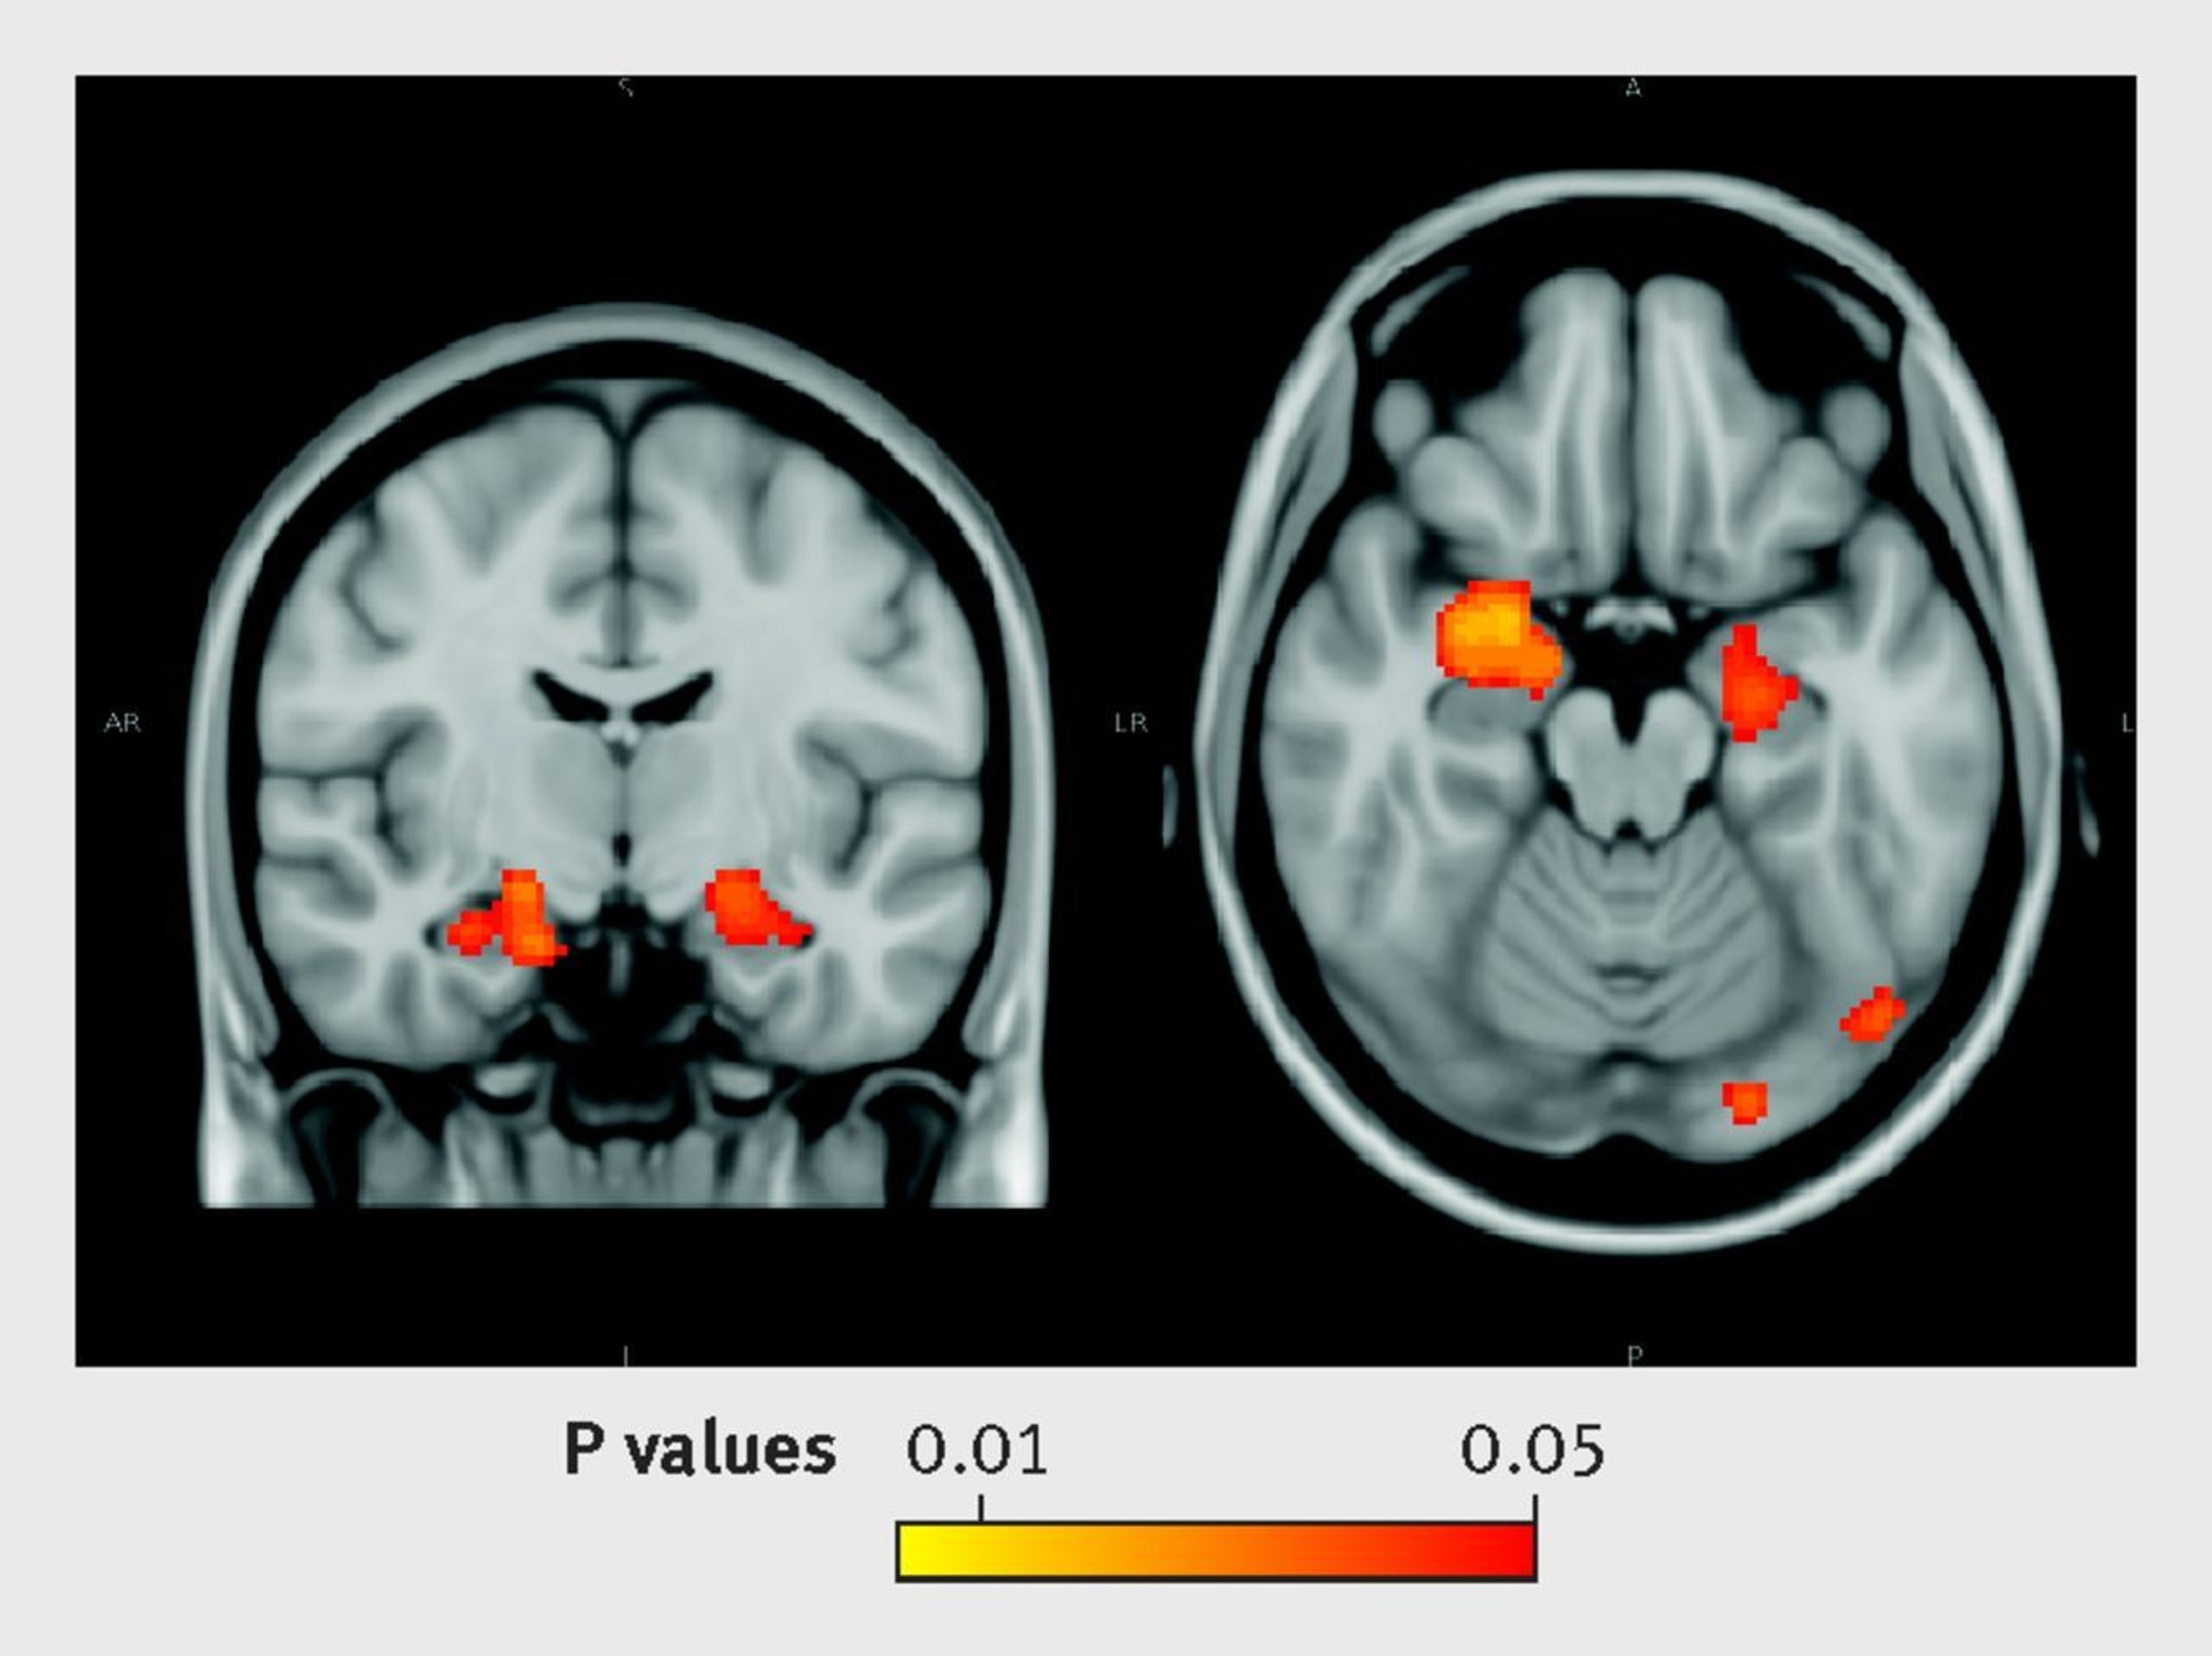 Welp, Even Occasional Happy Hour Drinks Muck Your Brain